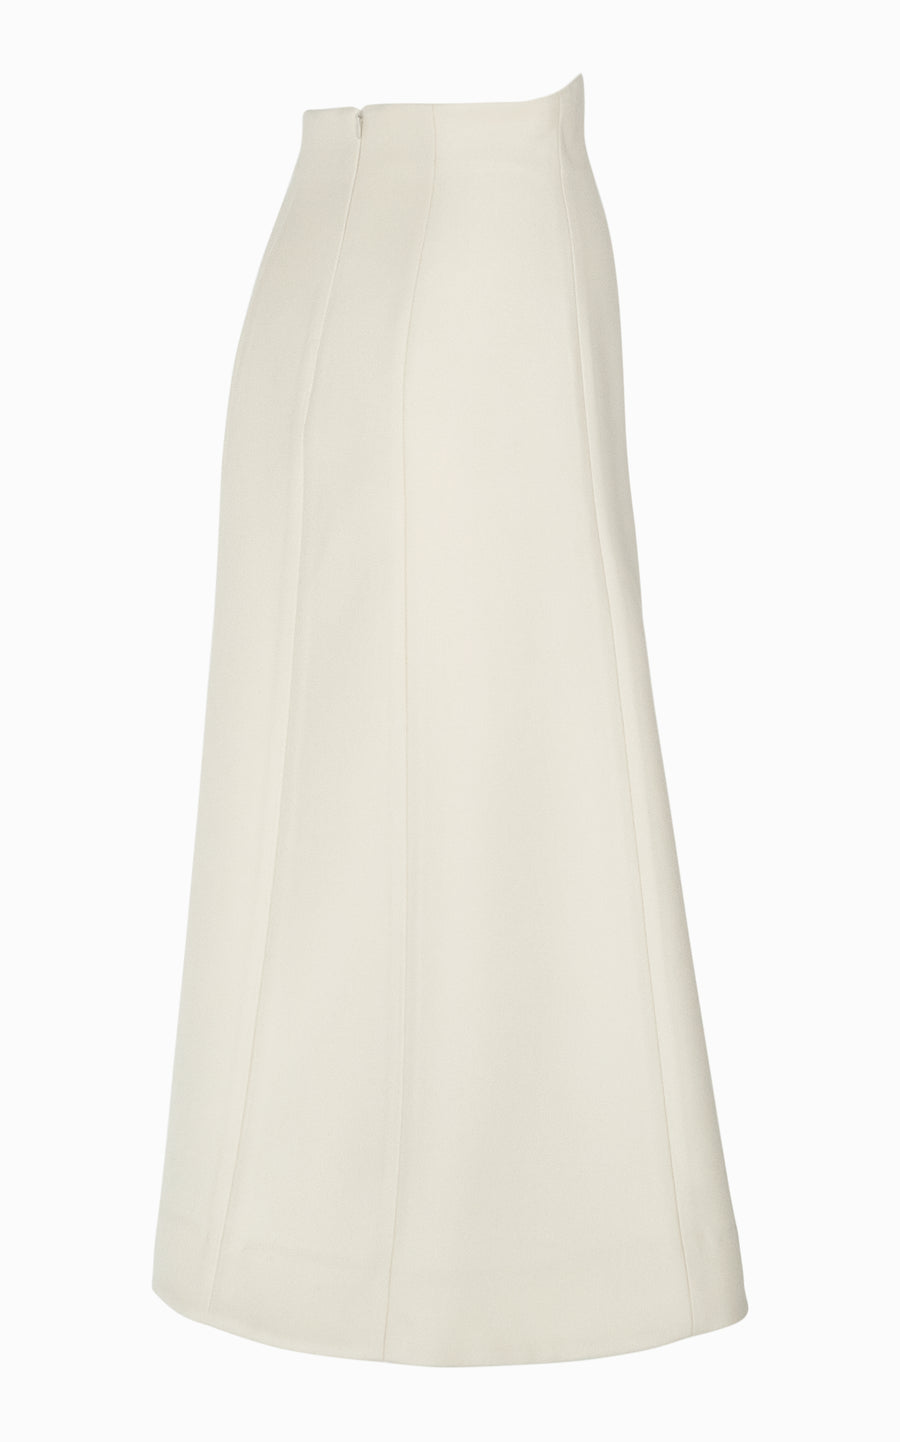 Preorder Girdle Midi Skirt | Bone